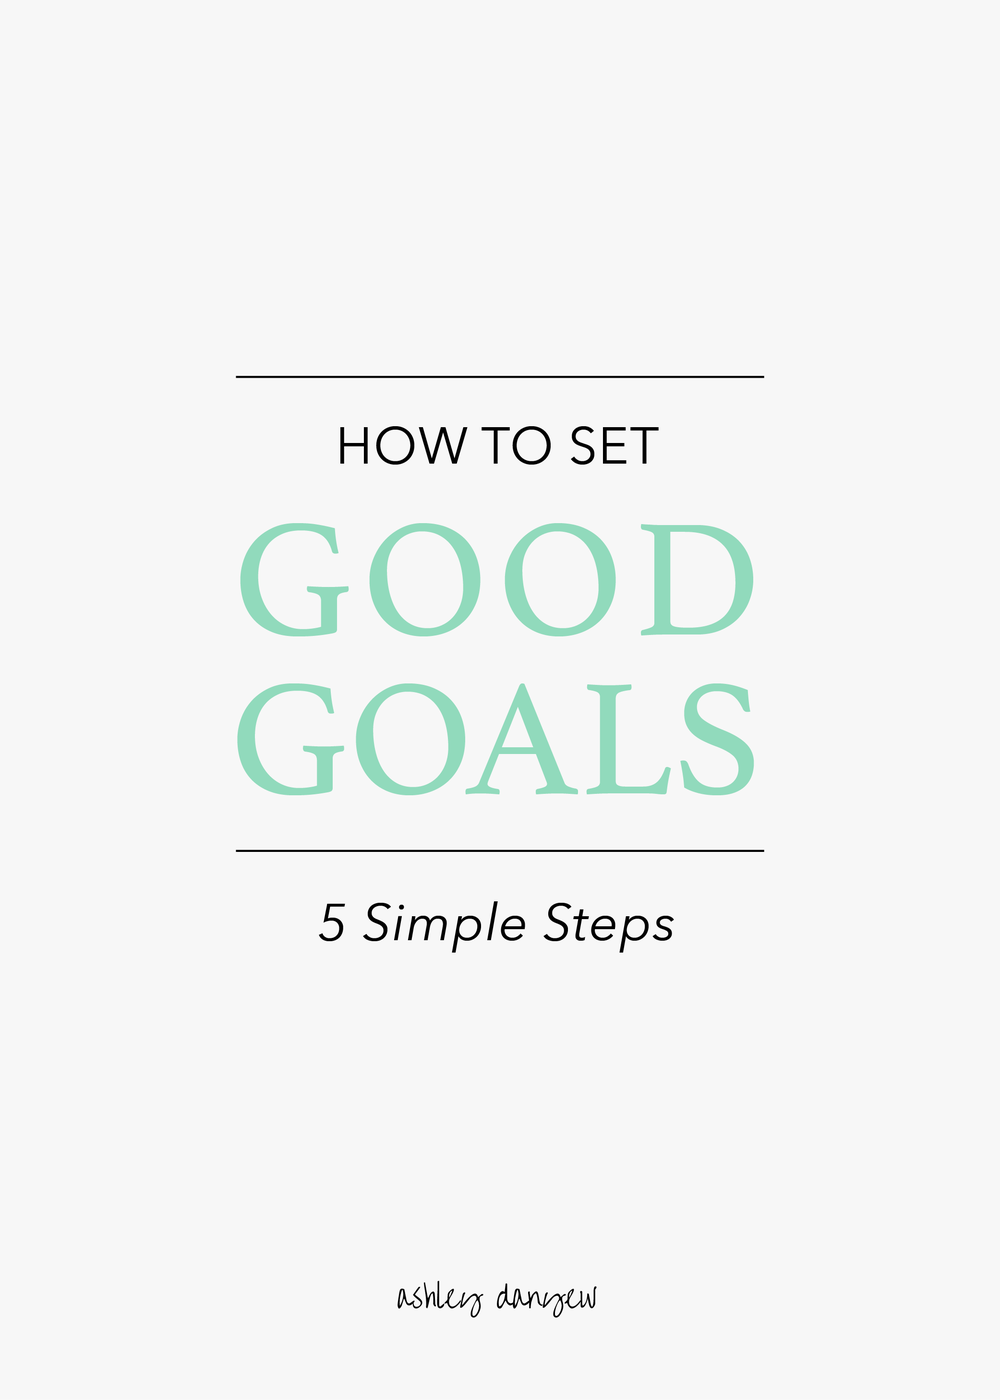 How-to-Set-Good-Goals-01-1.png